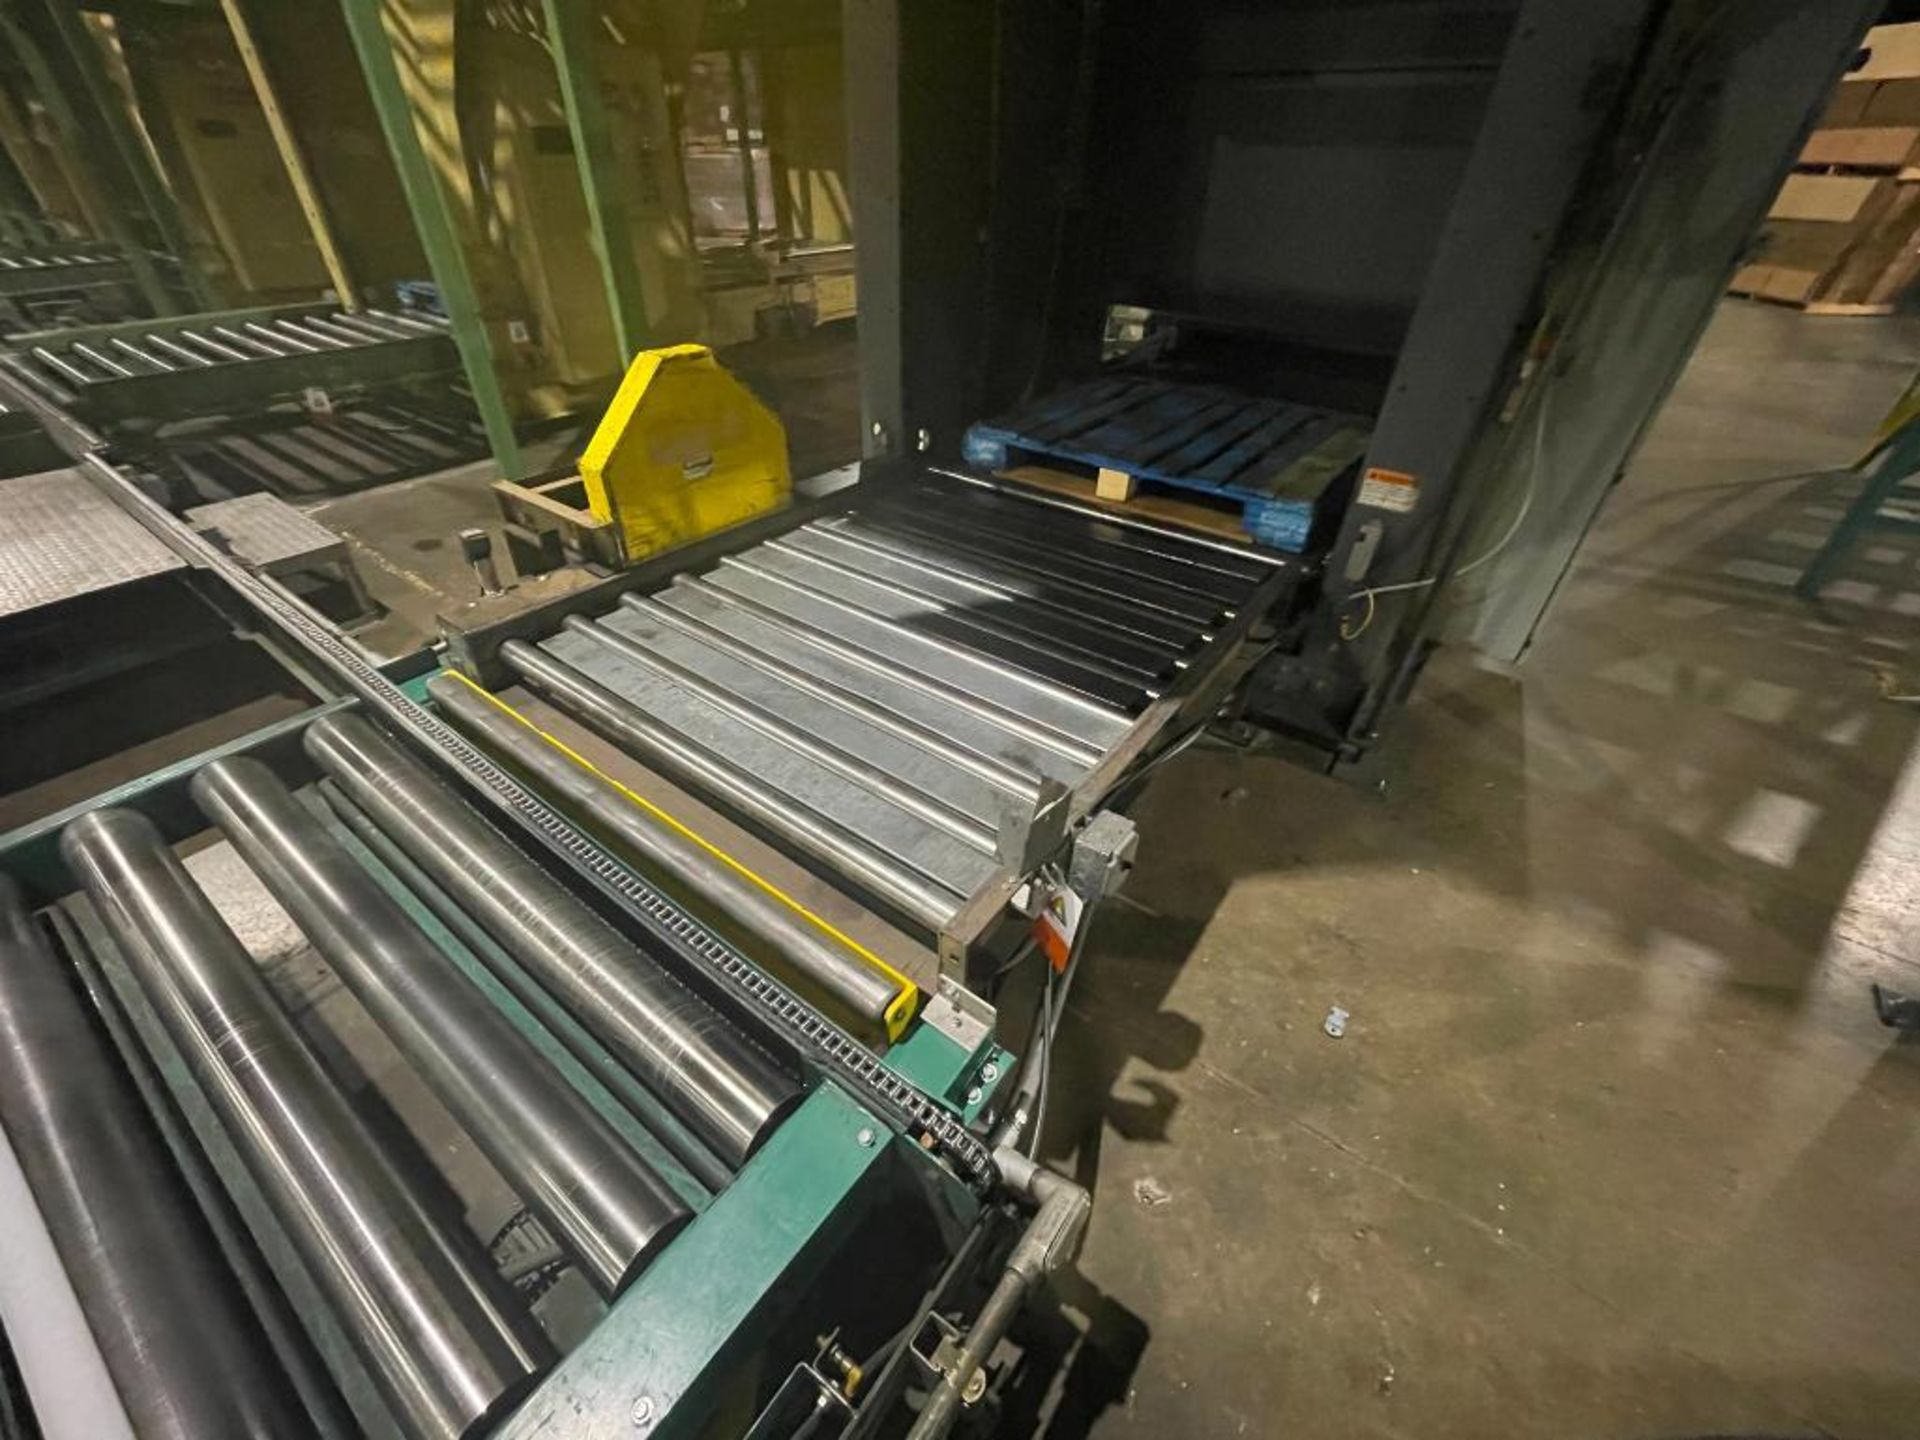 2008 Currie top to bottom palletizer, model PALLETIZER, sn 3348 - Image 16 of 28